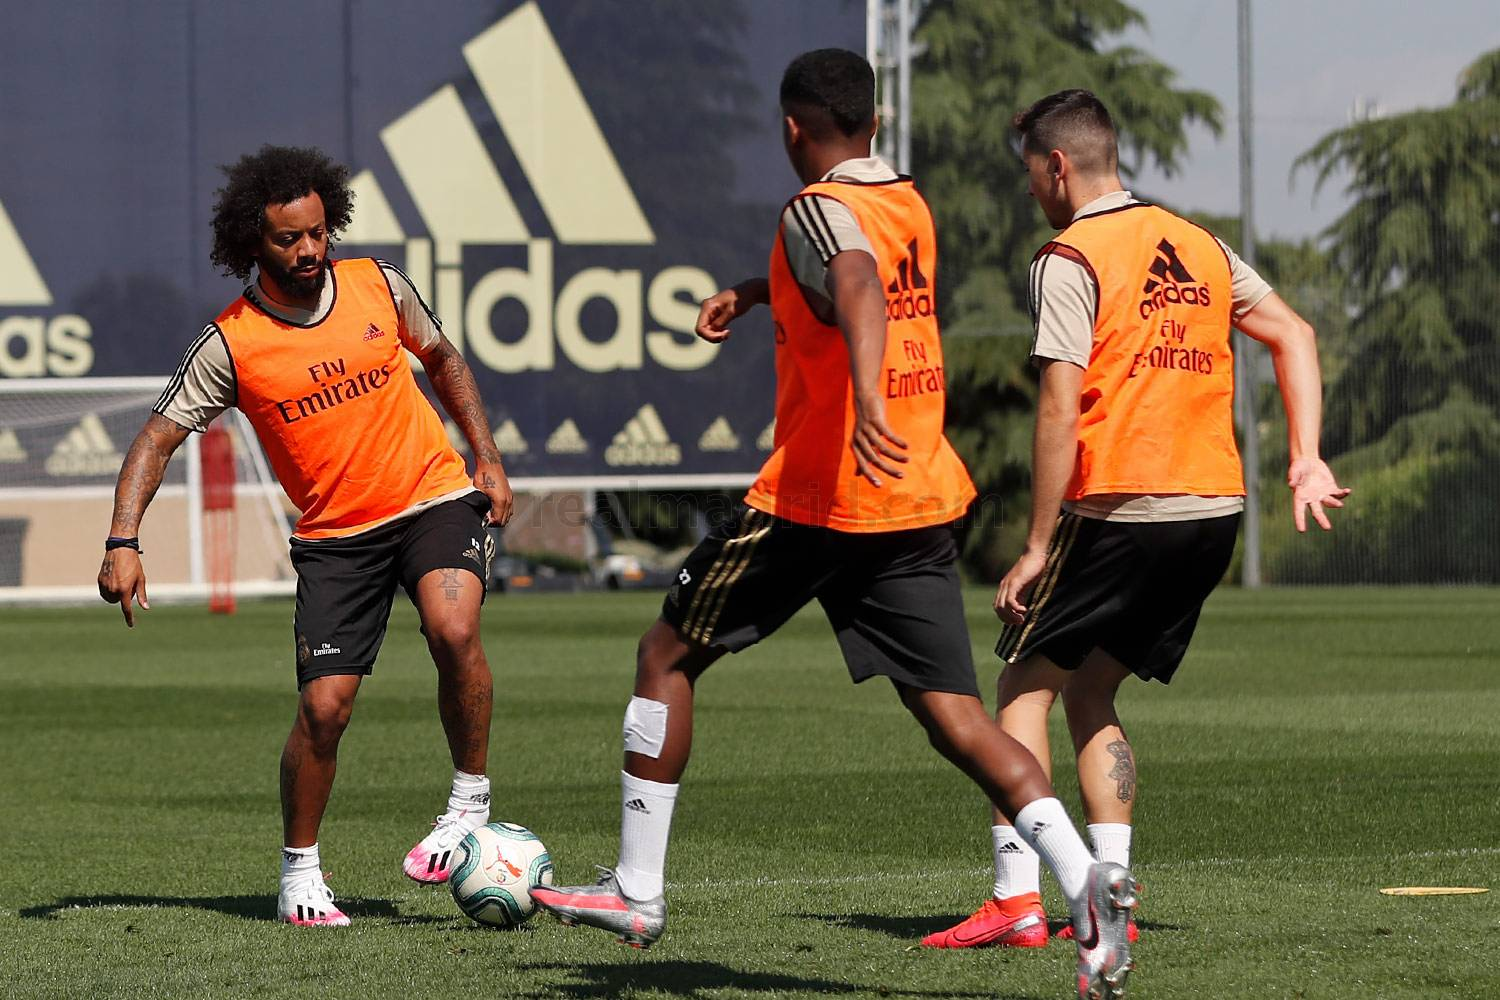 Real Madrid - Entrenamiento del Real Madrid  - 19-06-2020